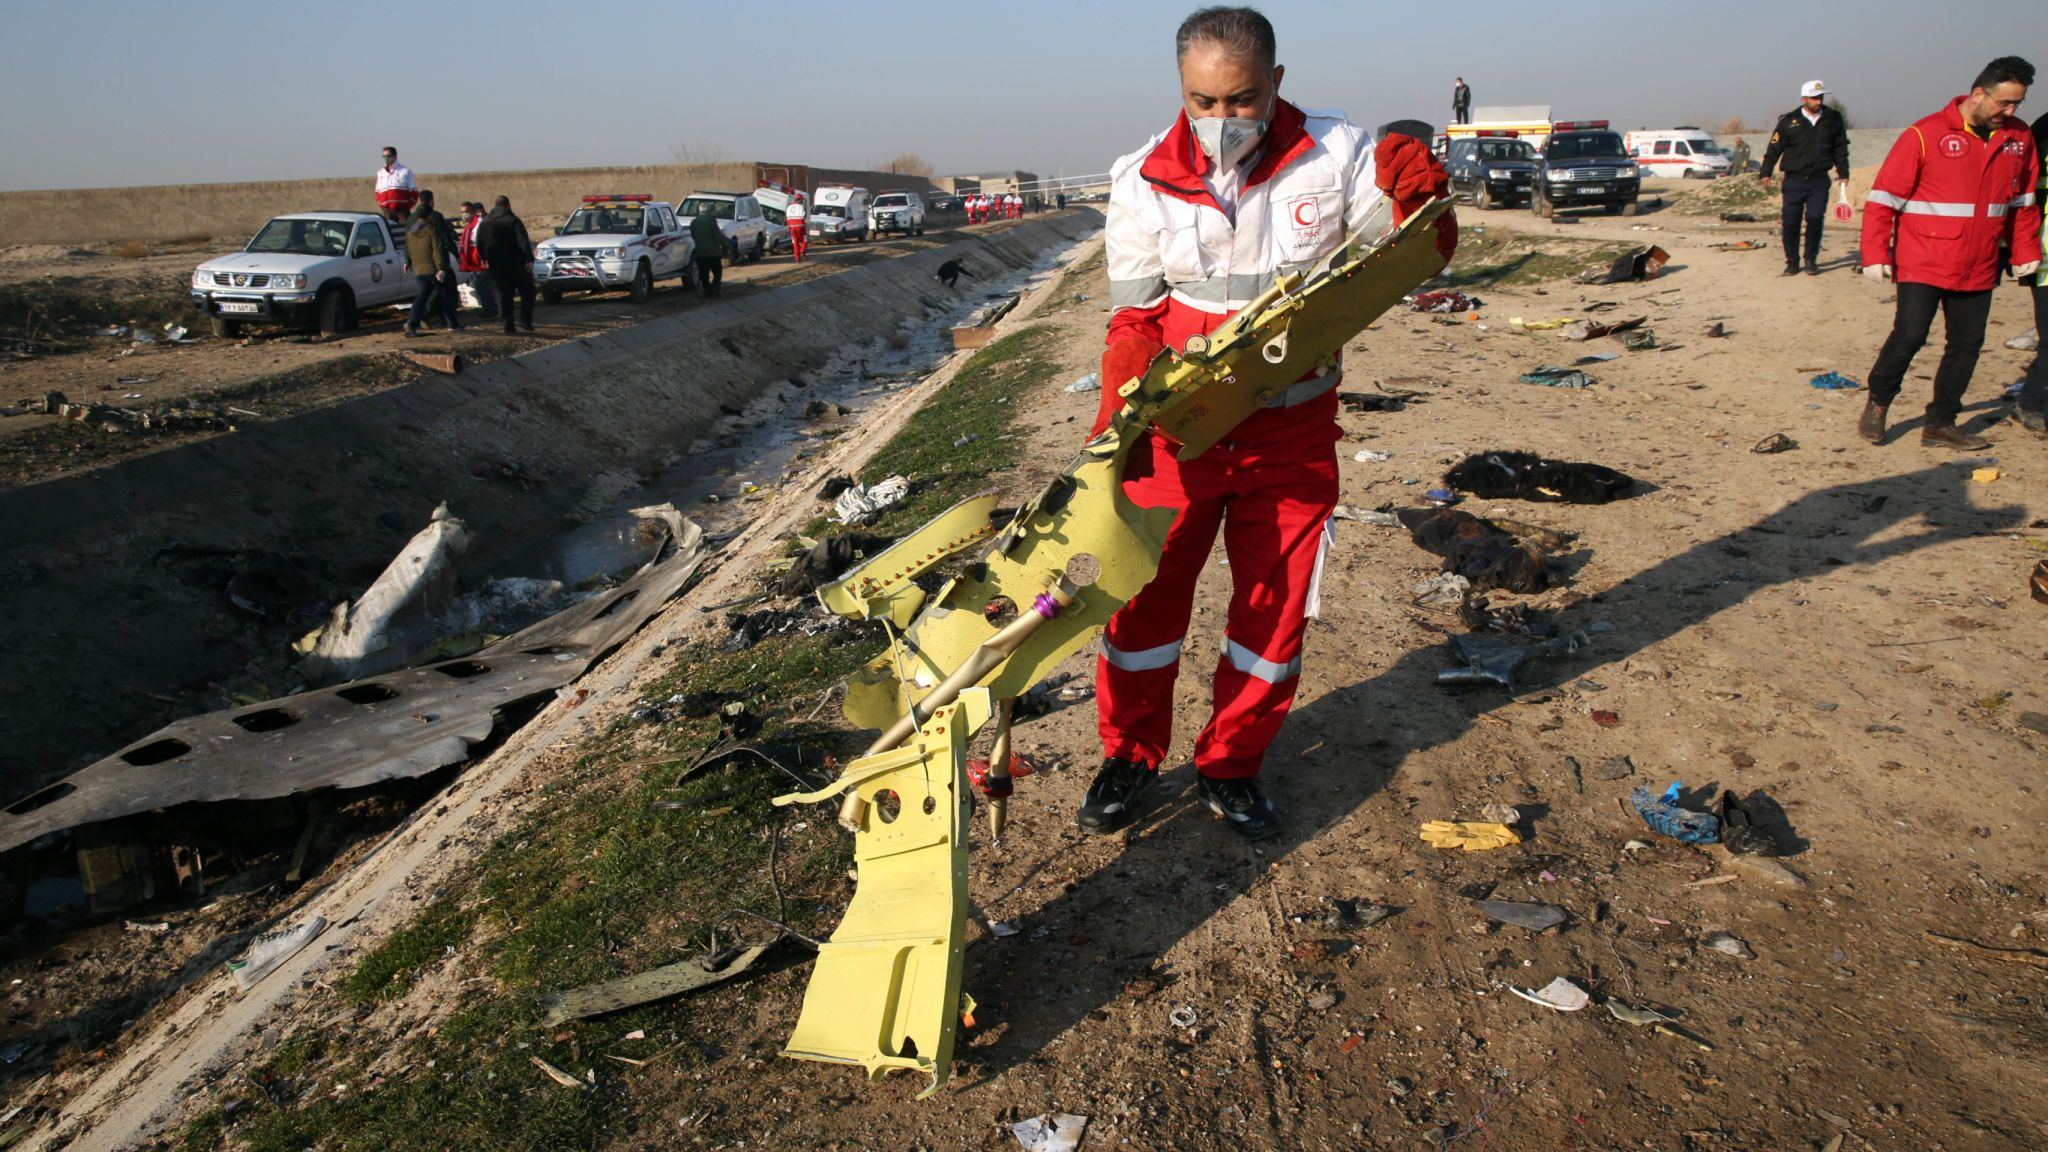 US Believes Iran Shot Down Plane That Killed 176 People Including 63 Canadians